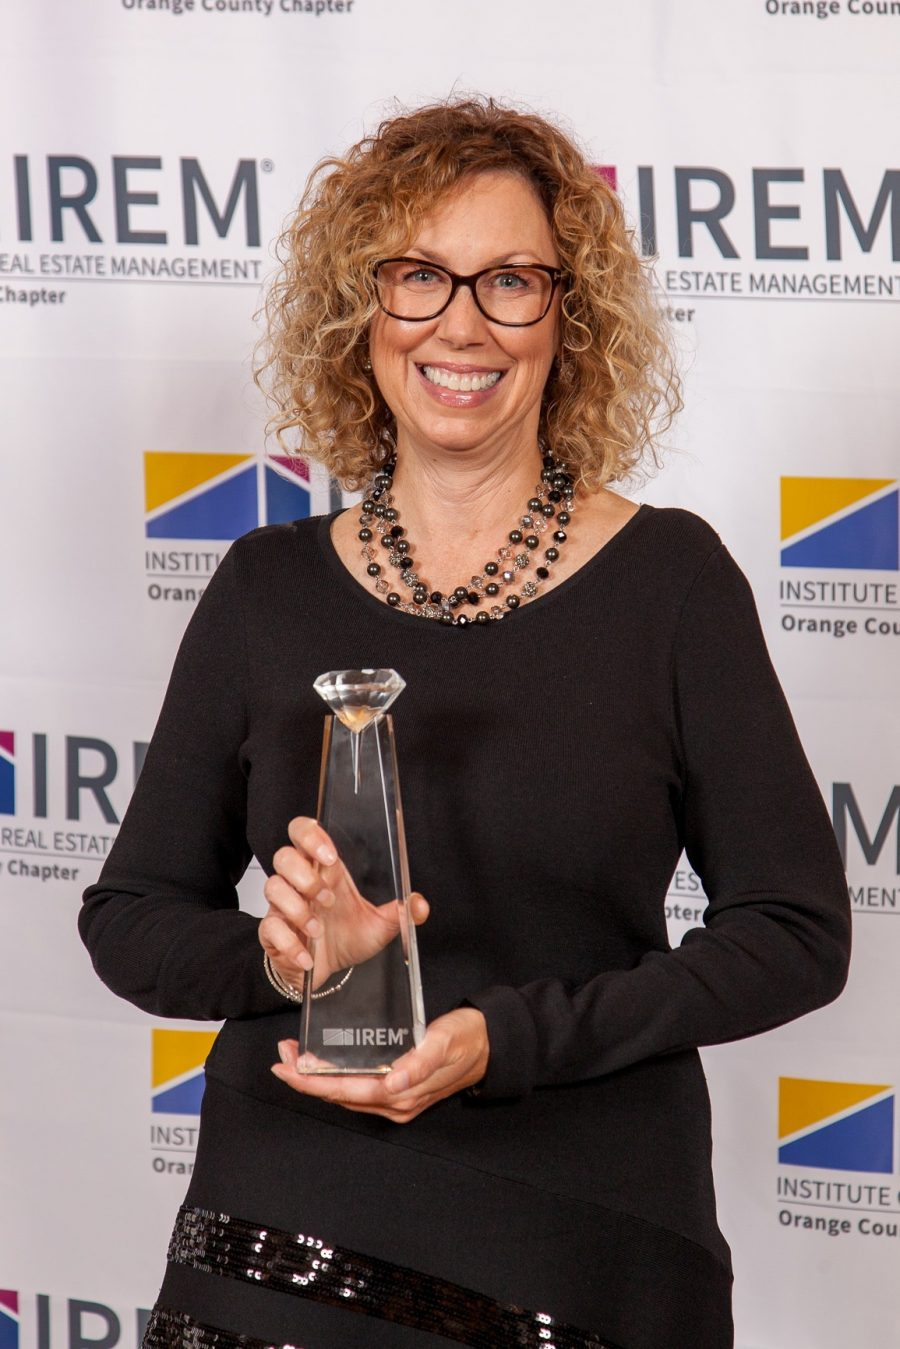 RockStar Wins Big at IREM Orange County Annual Awards